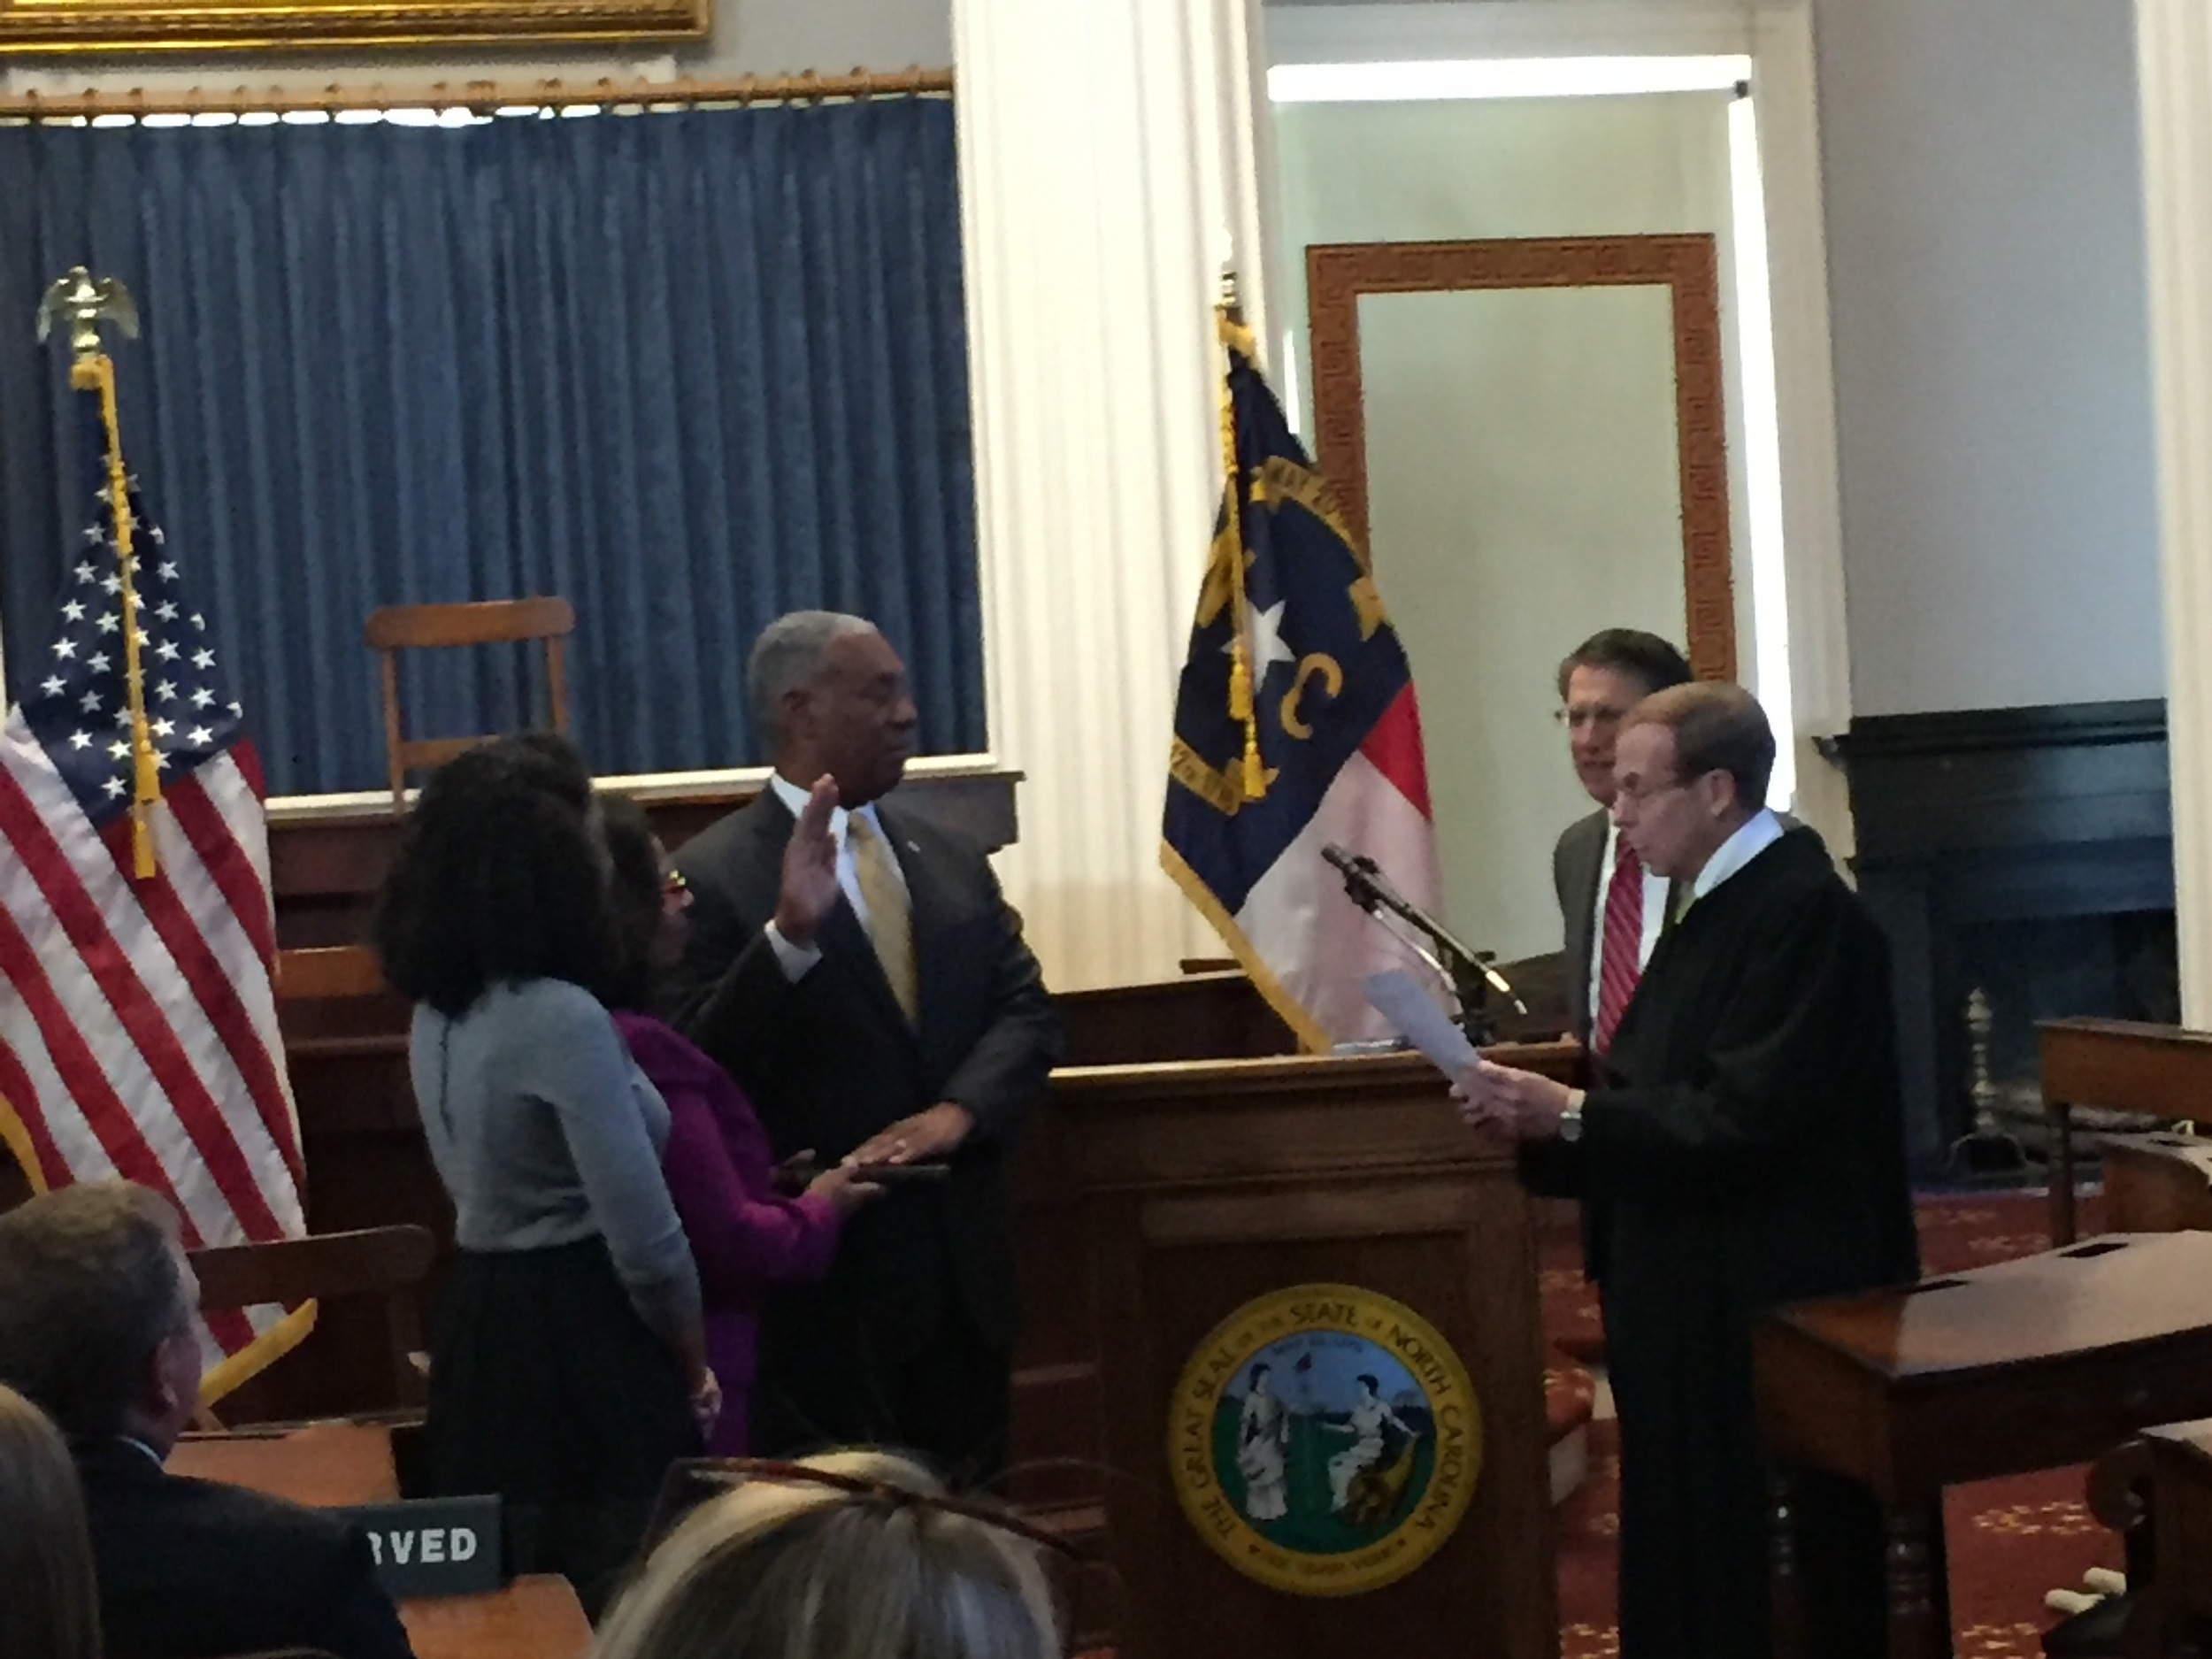 Justice Edmunds administers oath of office to General Cornell Wilson, Secretary of Military and Veterans Affairs, 20 October 2015.